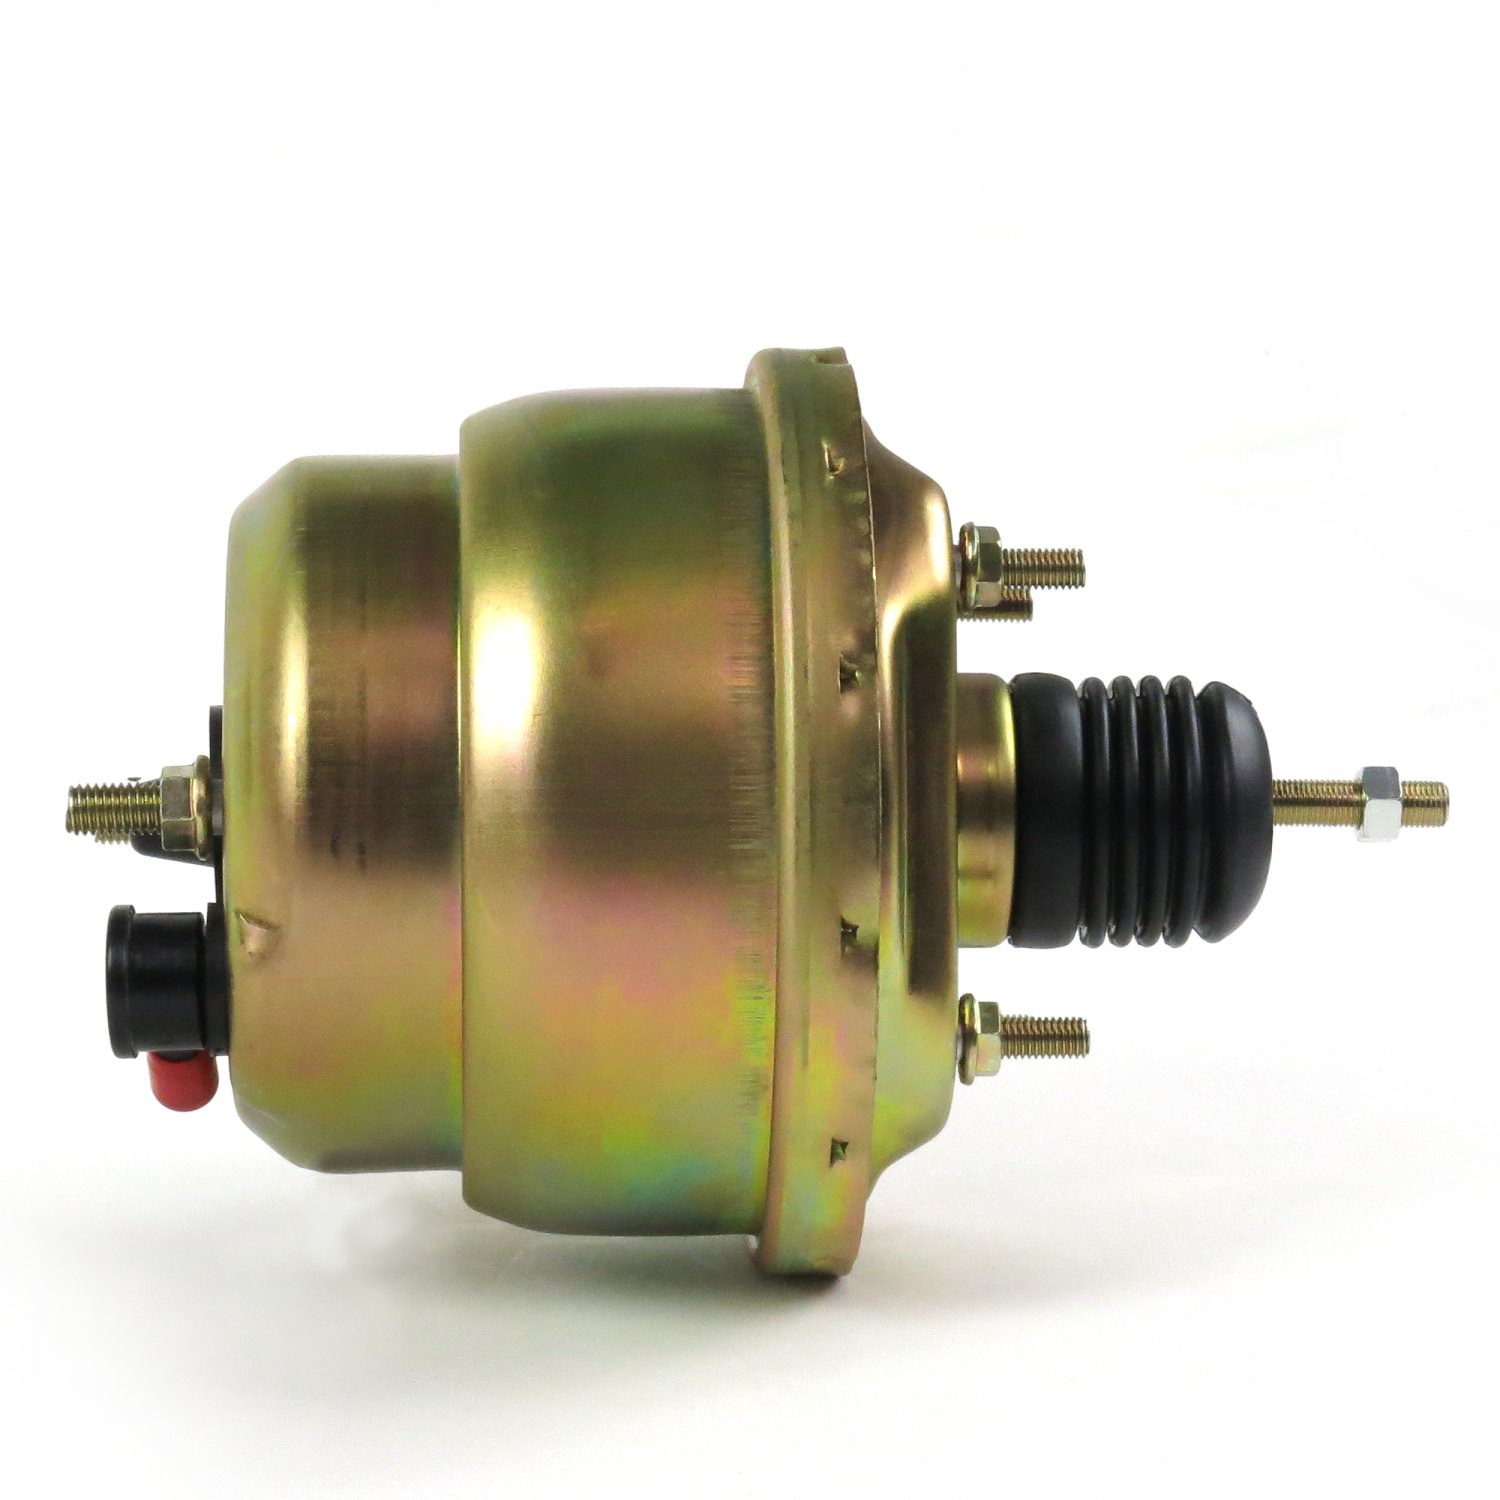 Mustang Ii Front Power Disc Brake Kit 1955 1956 1957 Chevrolet Chevy Starter Motor Click To Enlarge